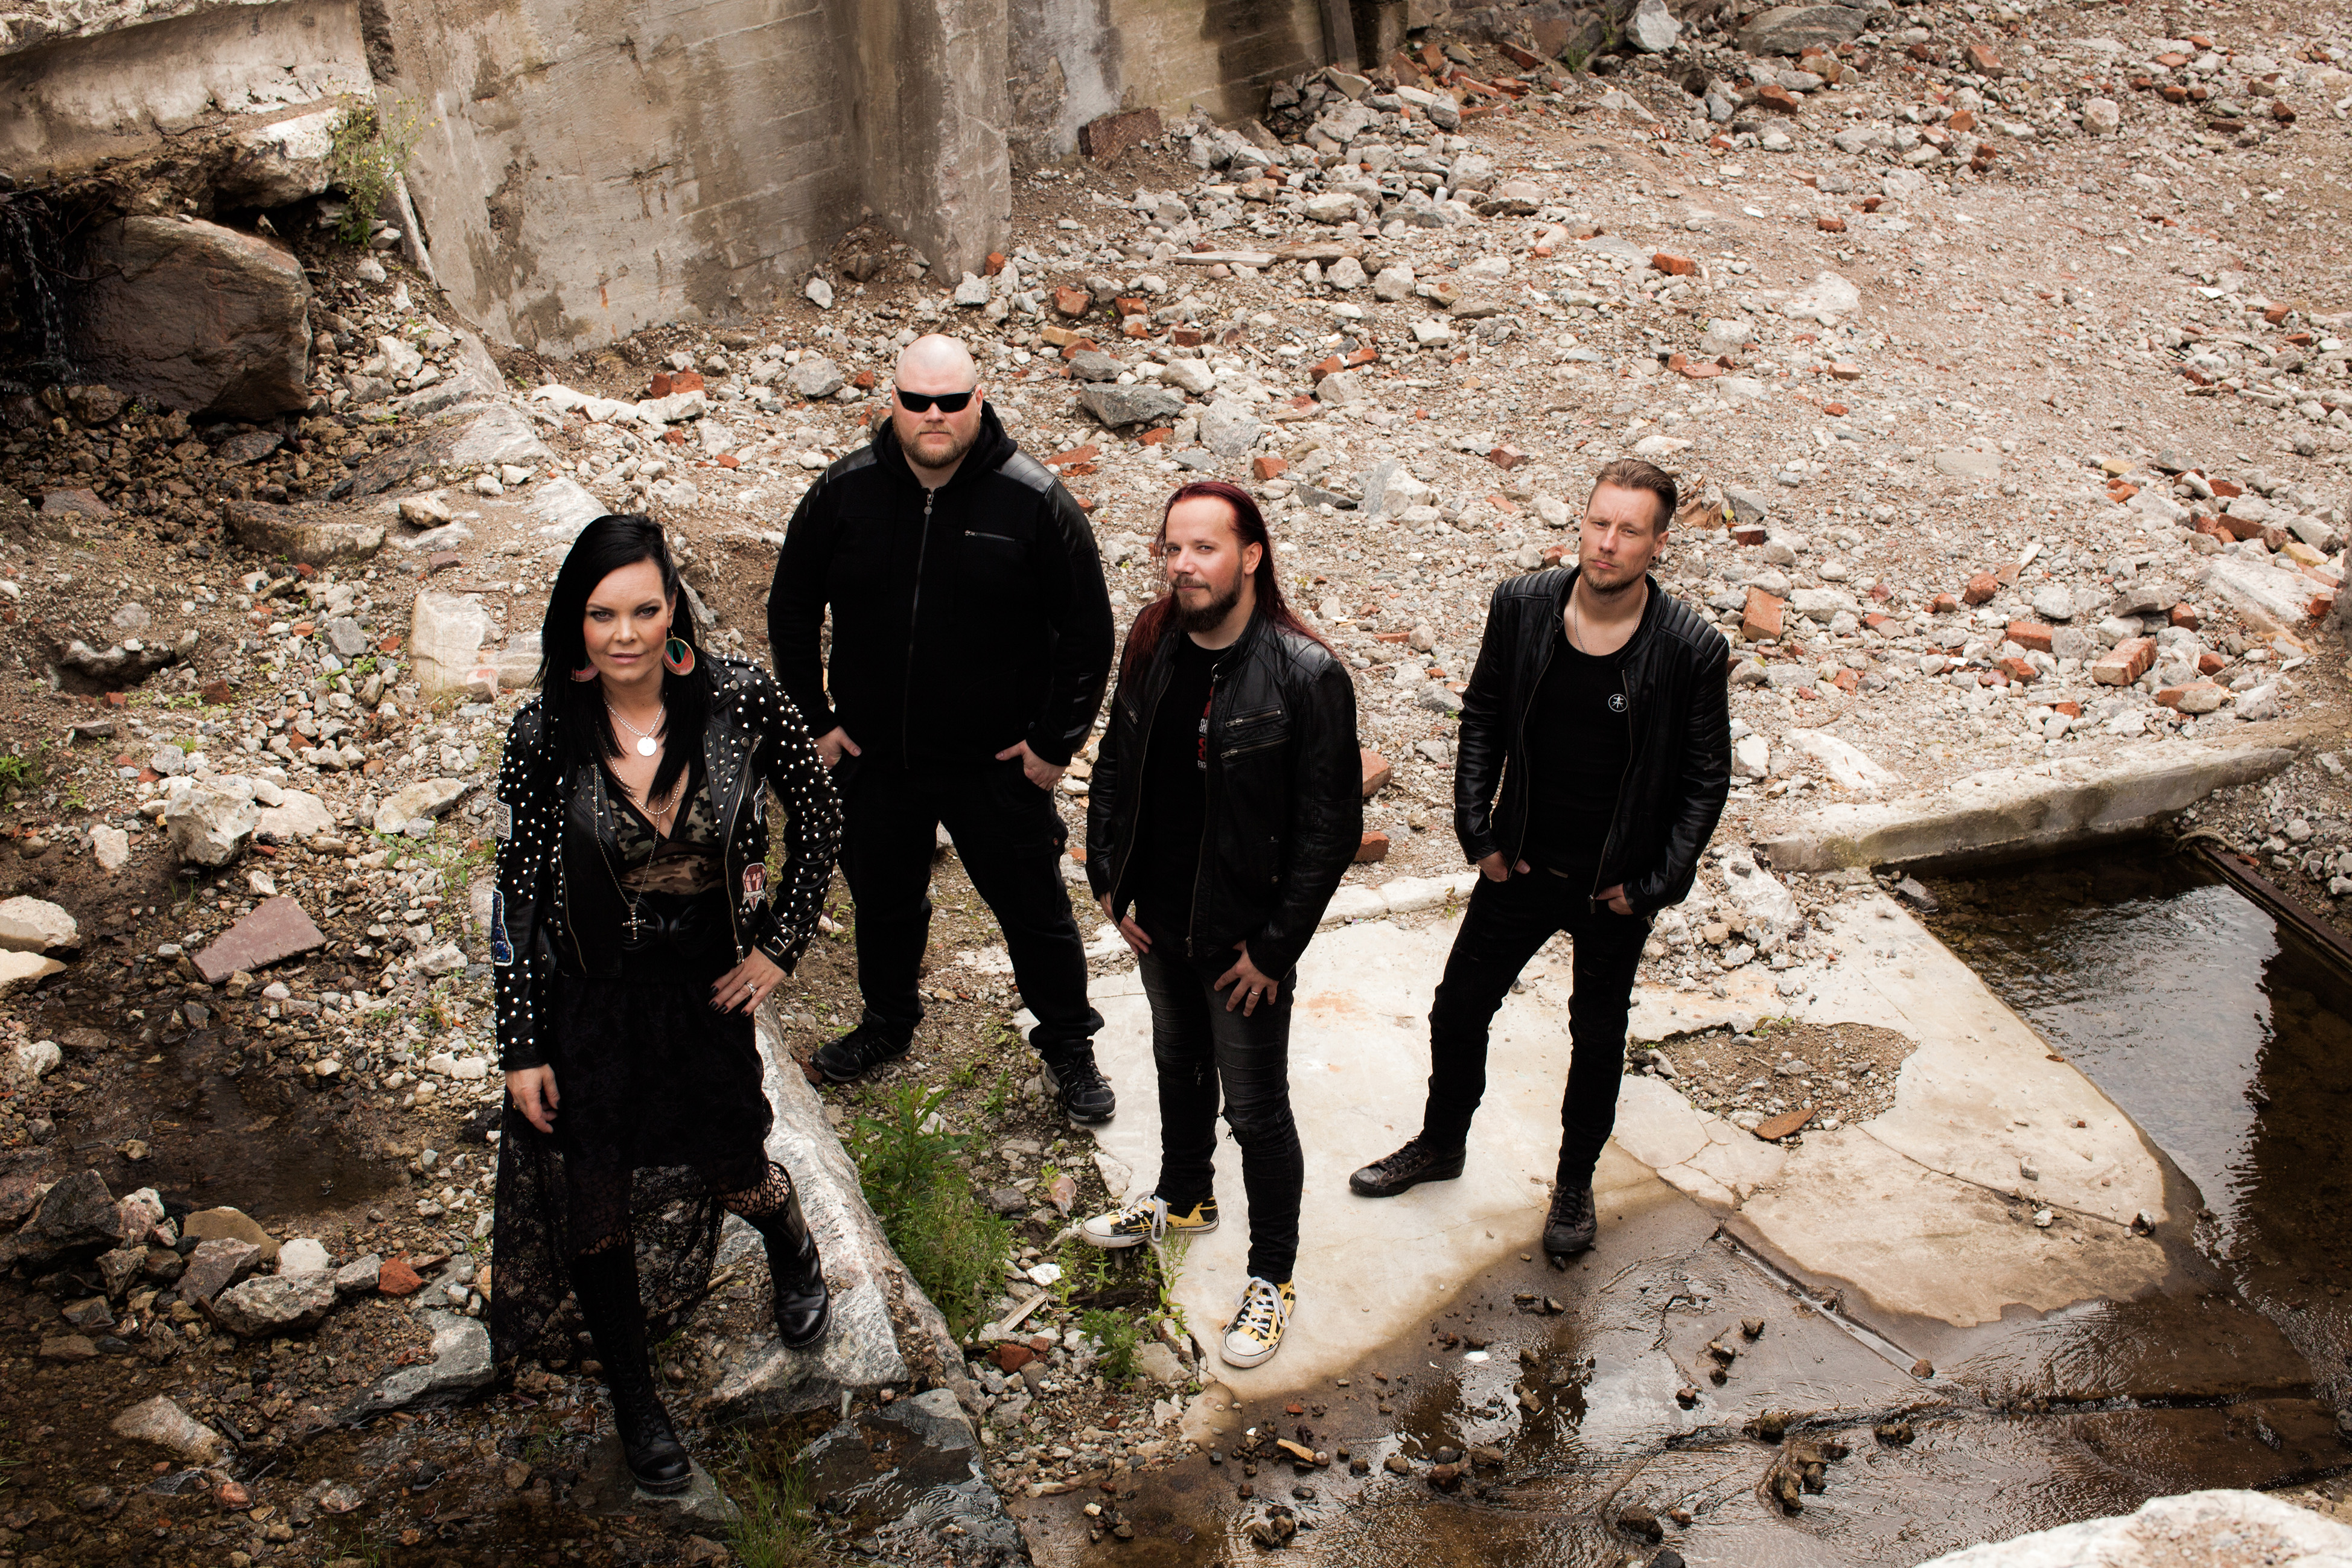 Anette Olzon Discusses Her New Project The Dark Element